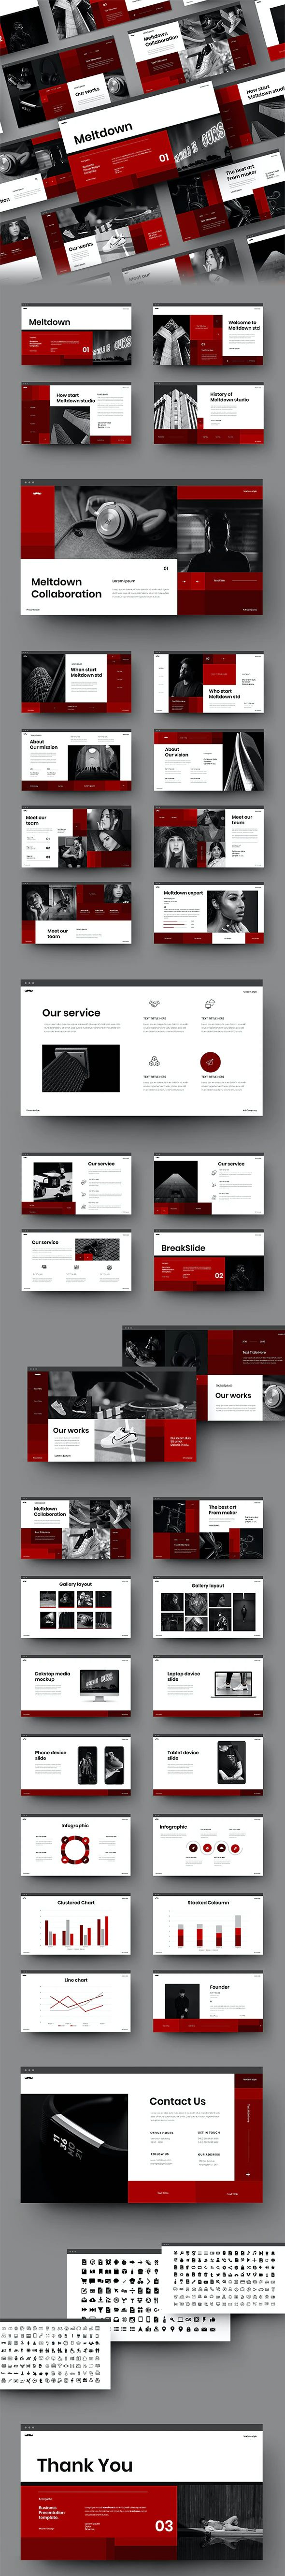 Meltdown – Business PowerPoint Template Preview